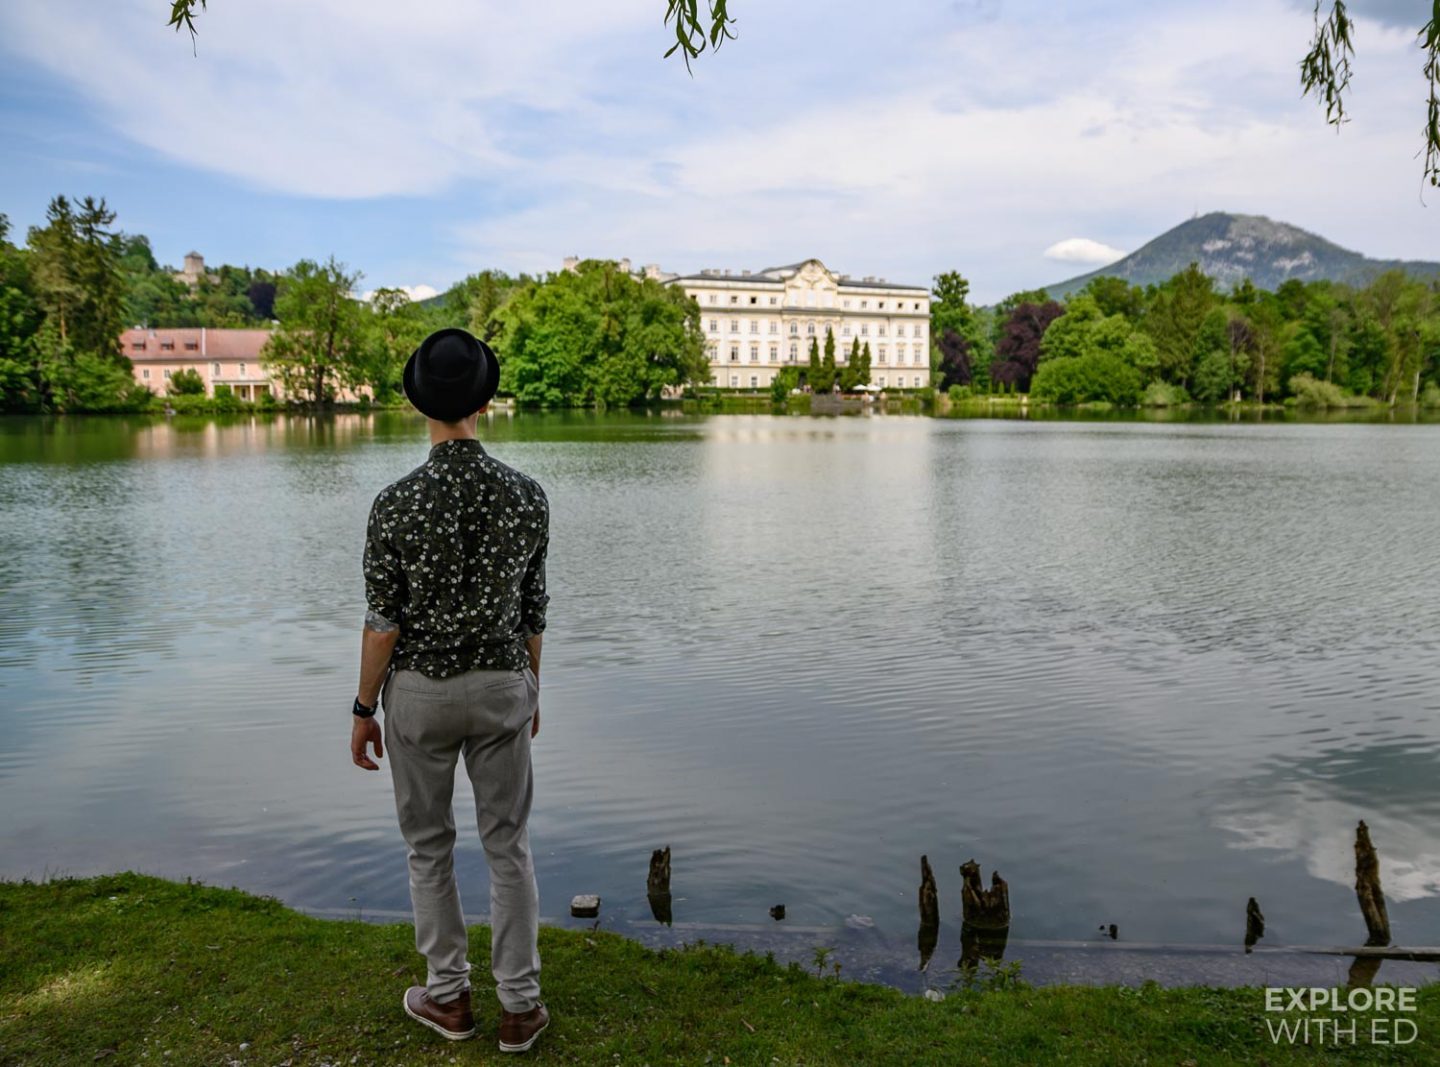 Lake Leopoldskron and hotel, a location for The Sound of Music motion picture